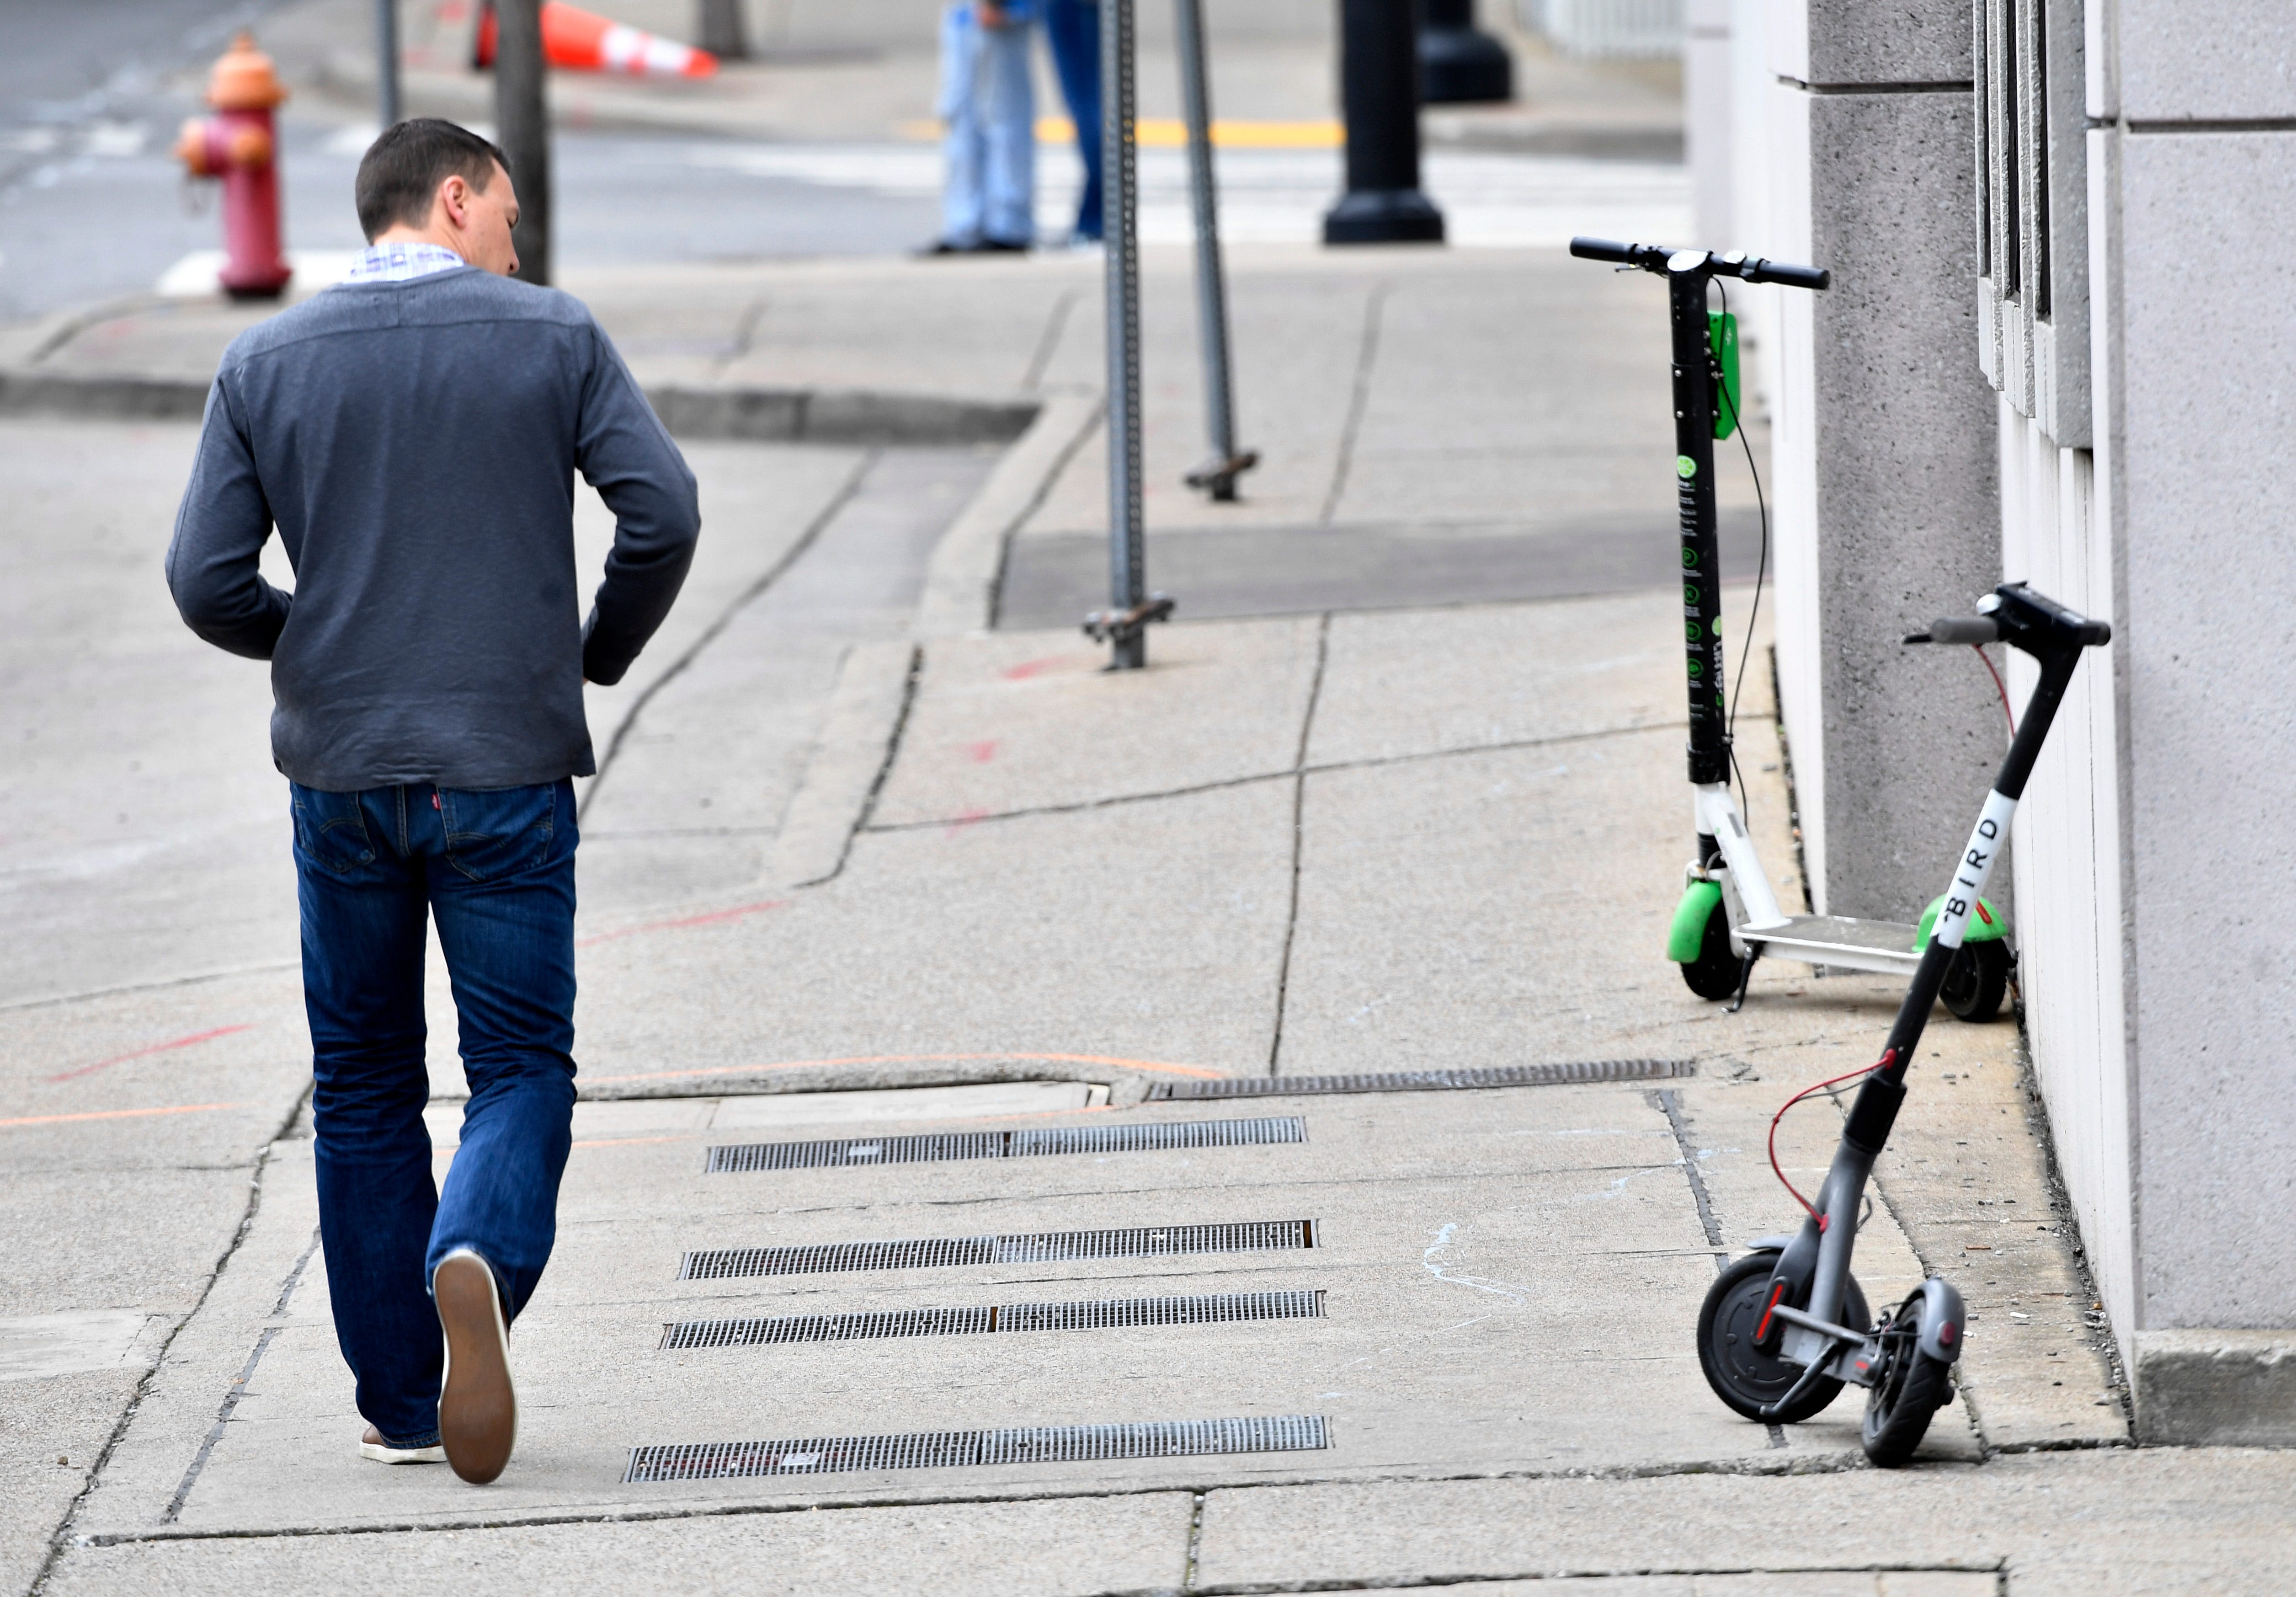 Bird scooters may soon have new laws in Nashville